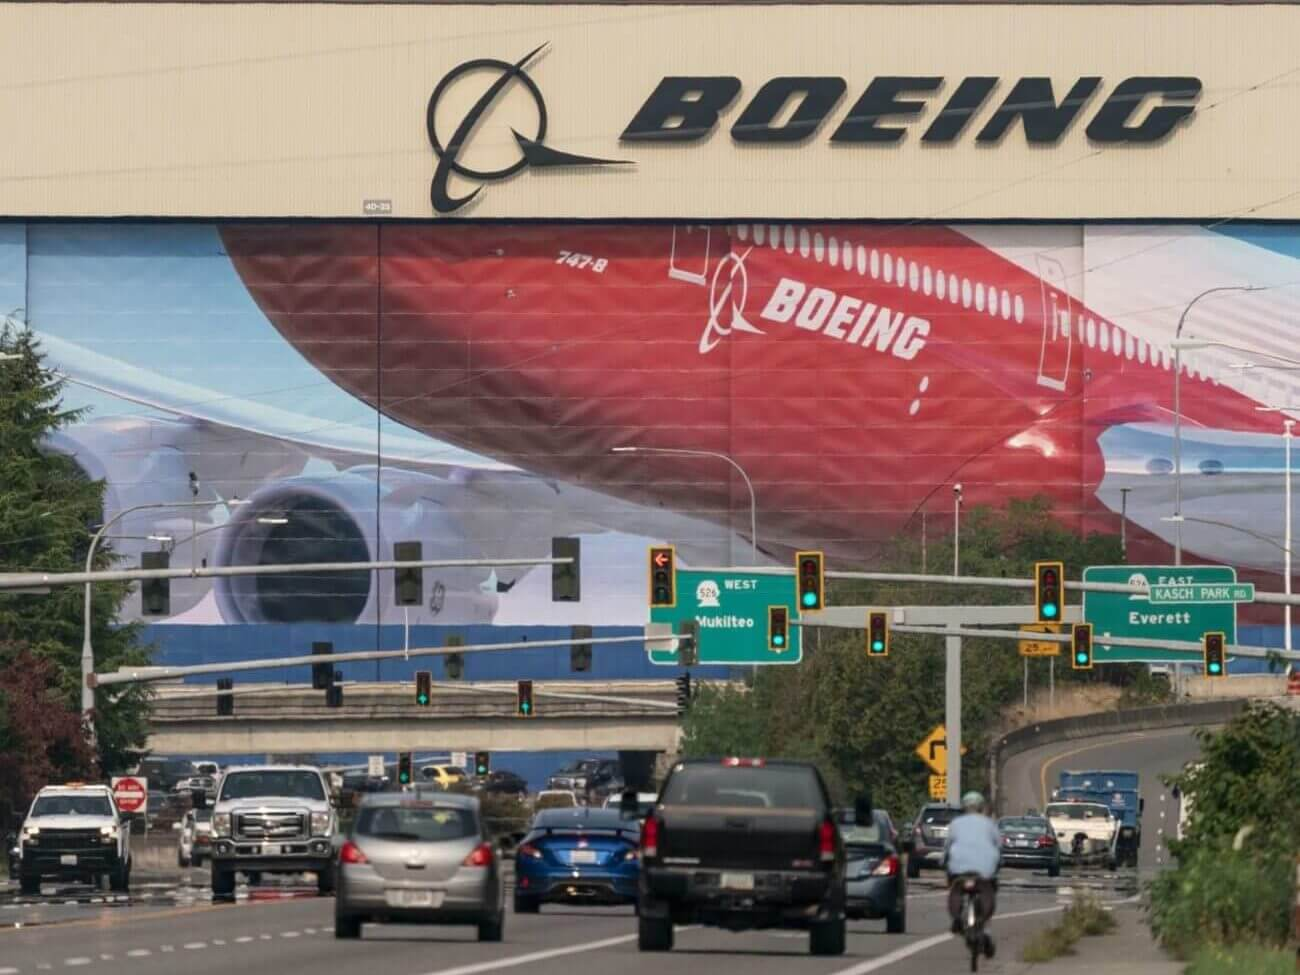 Boeing Is the Latest Firm to Dash a Adverse Change Atmosphere